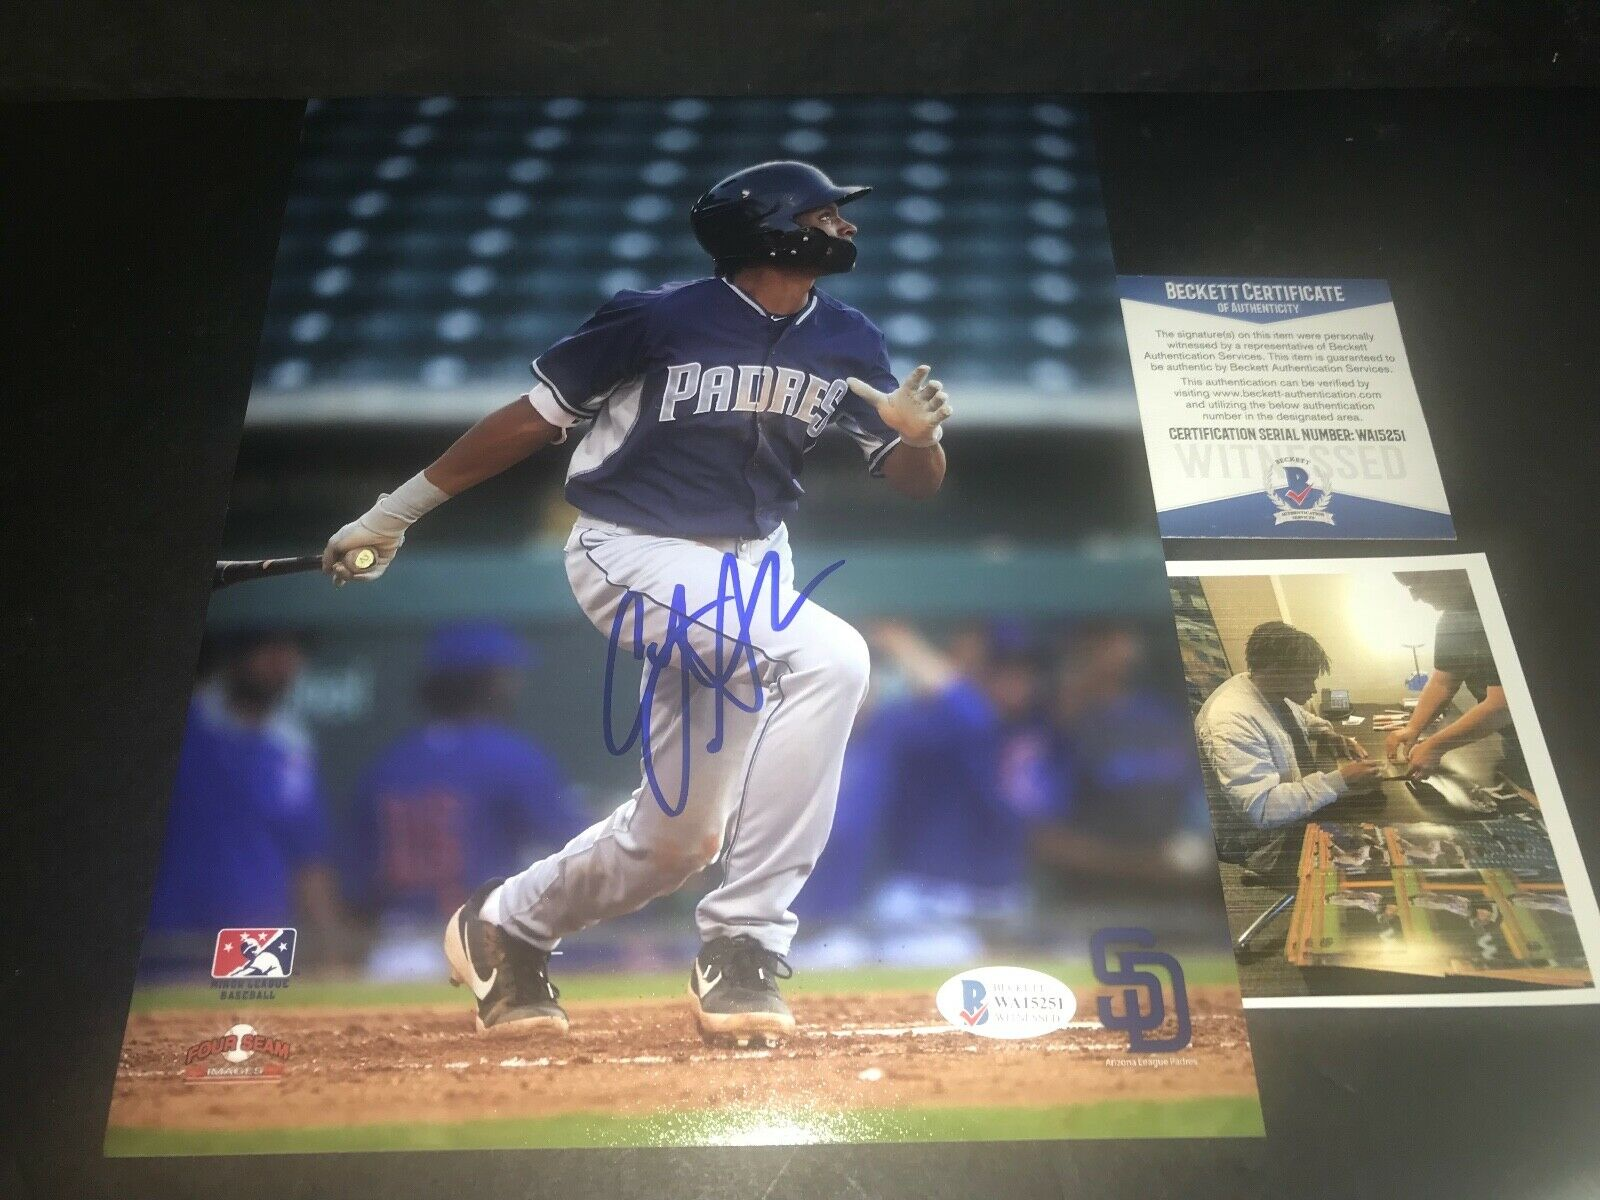 CJ Abrams San Diego Padres Autographed Signed 8x10 Photo Beckett WITNESS COA 2